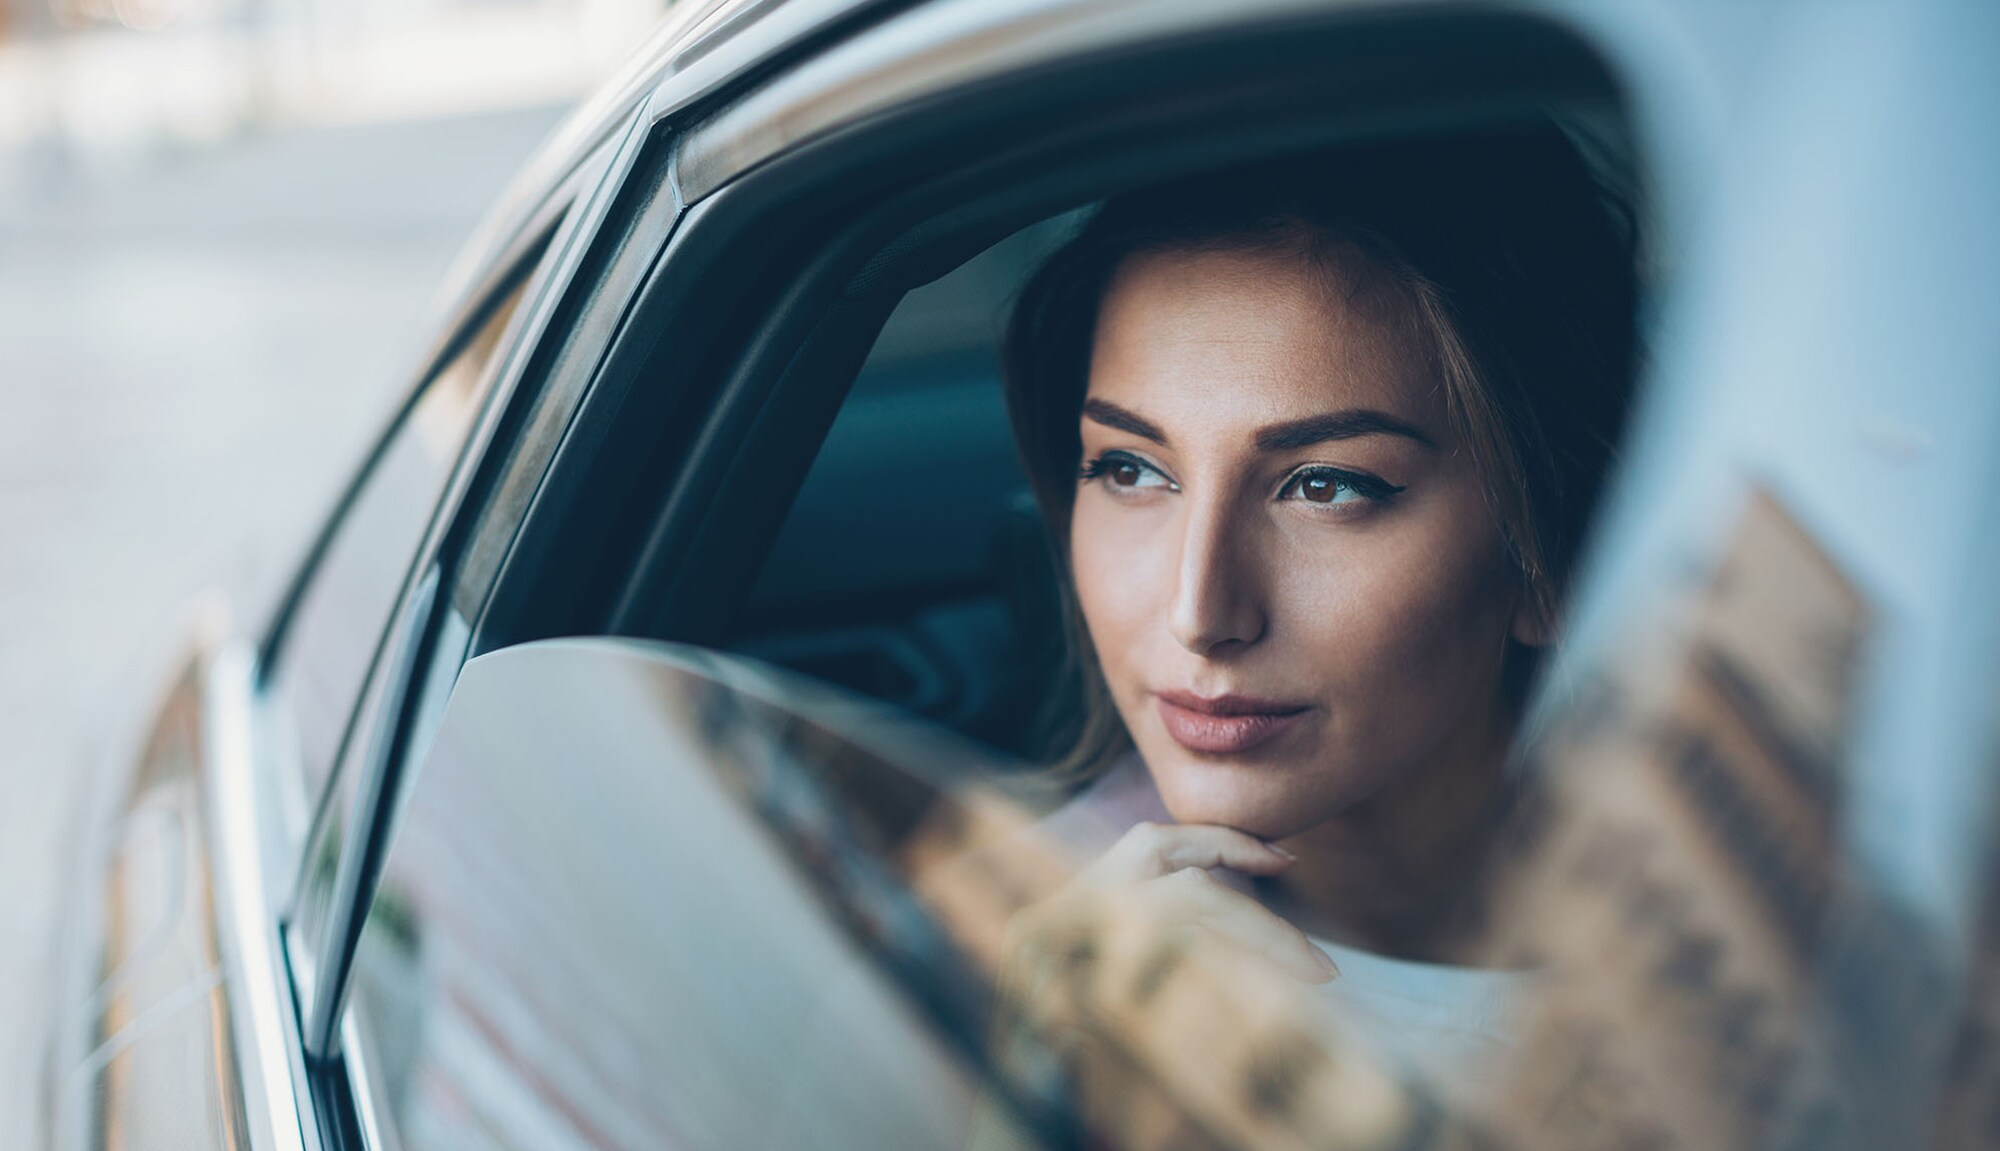 Rewards points – woman sightseeing in car.